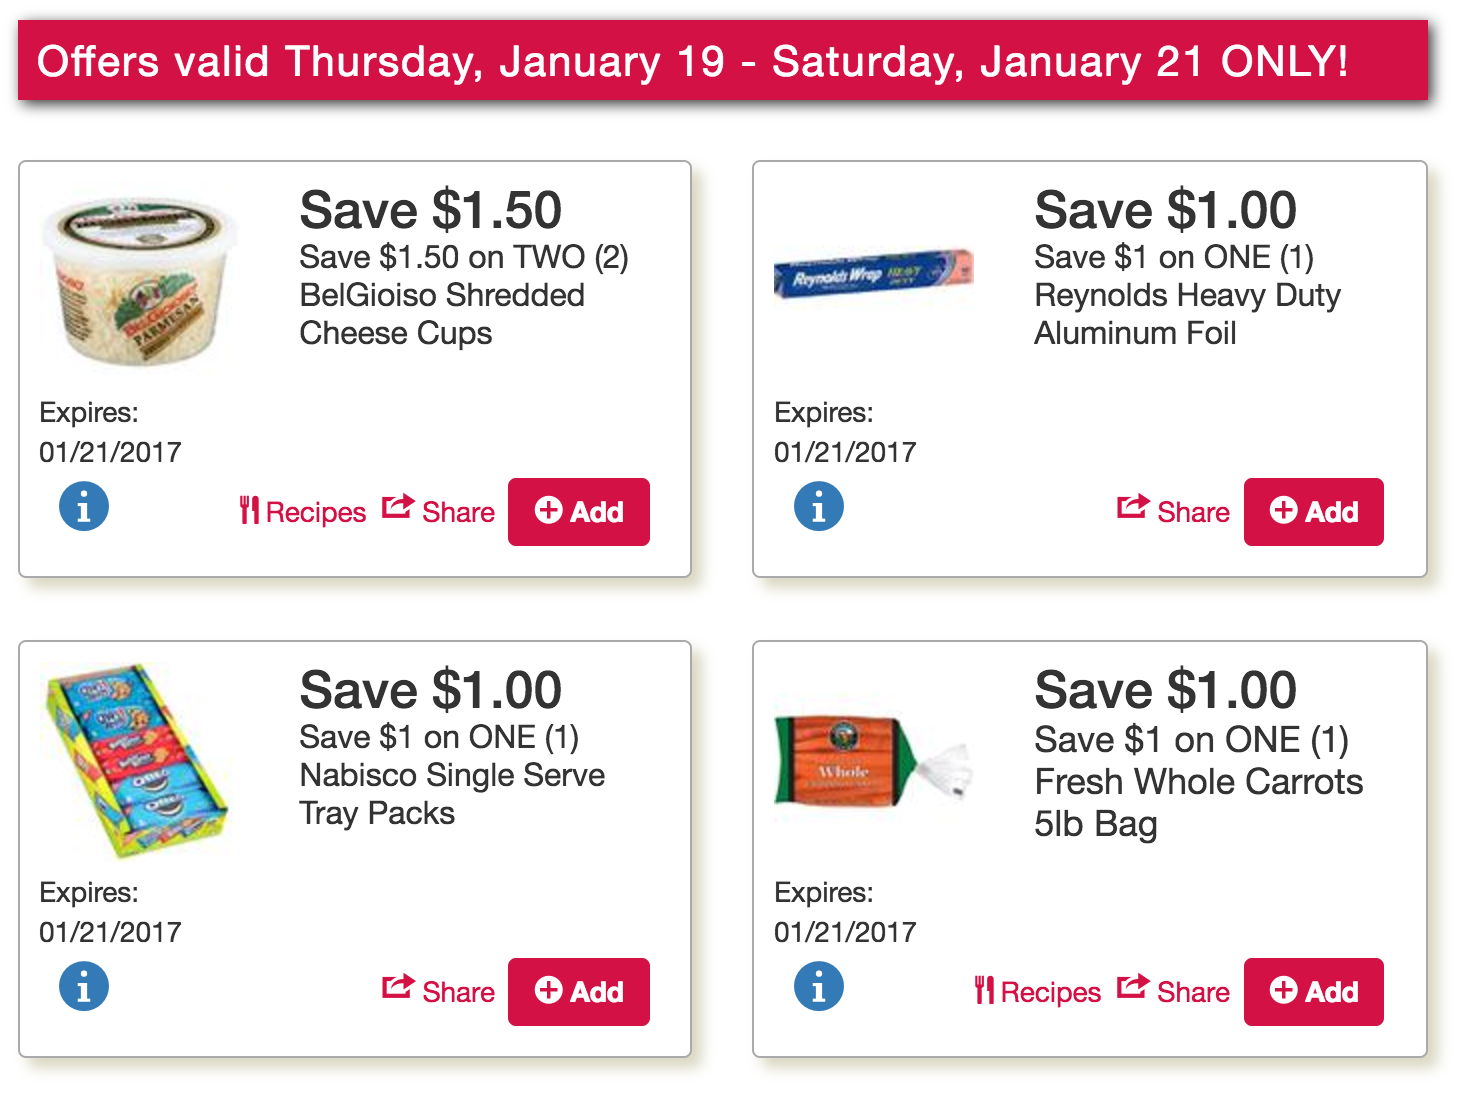 Exclusive Late Week Tops Markets Coupons live: $.49 Reynolds Wrap or $.99 Parchment Paper plus $.55lb Carrots and more!